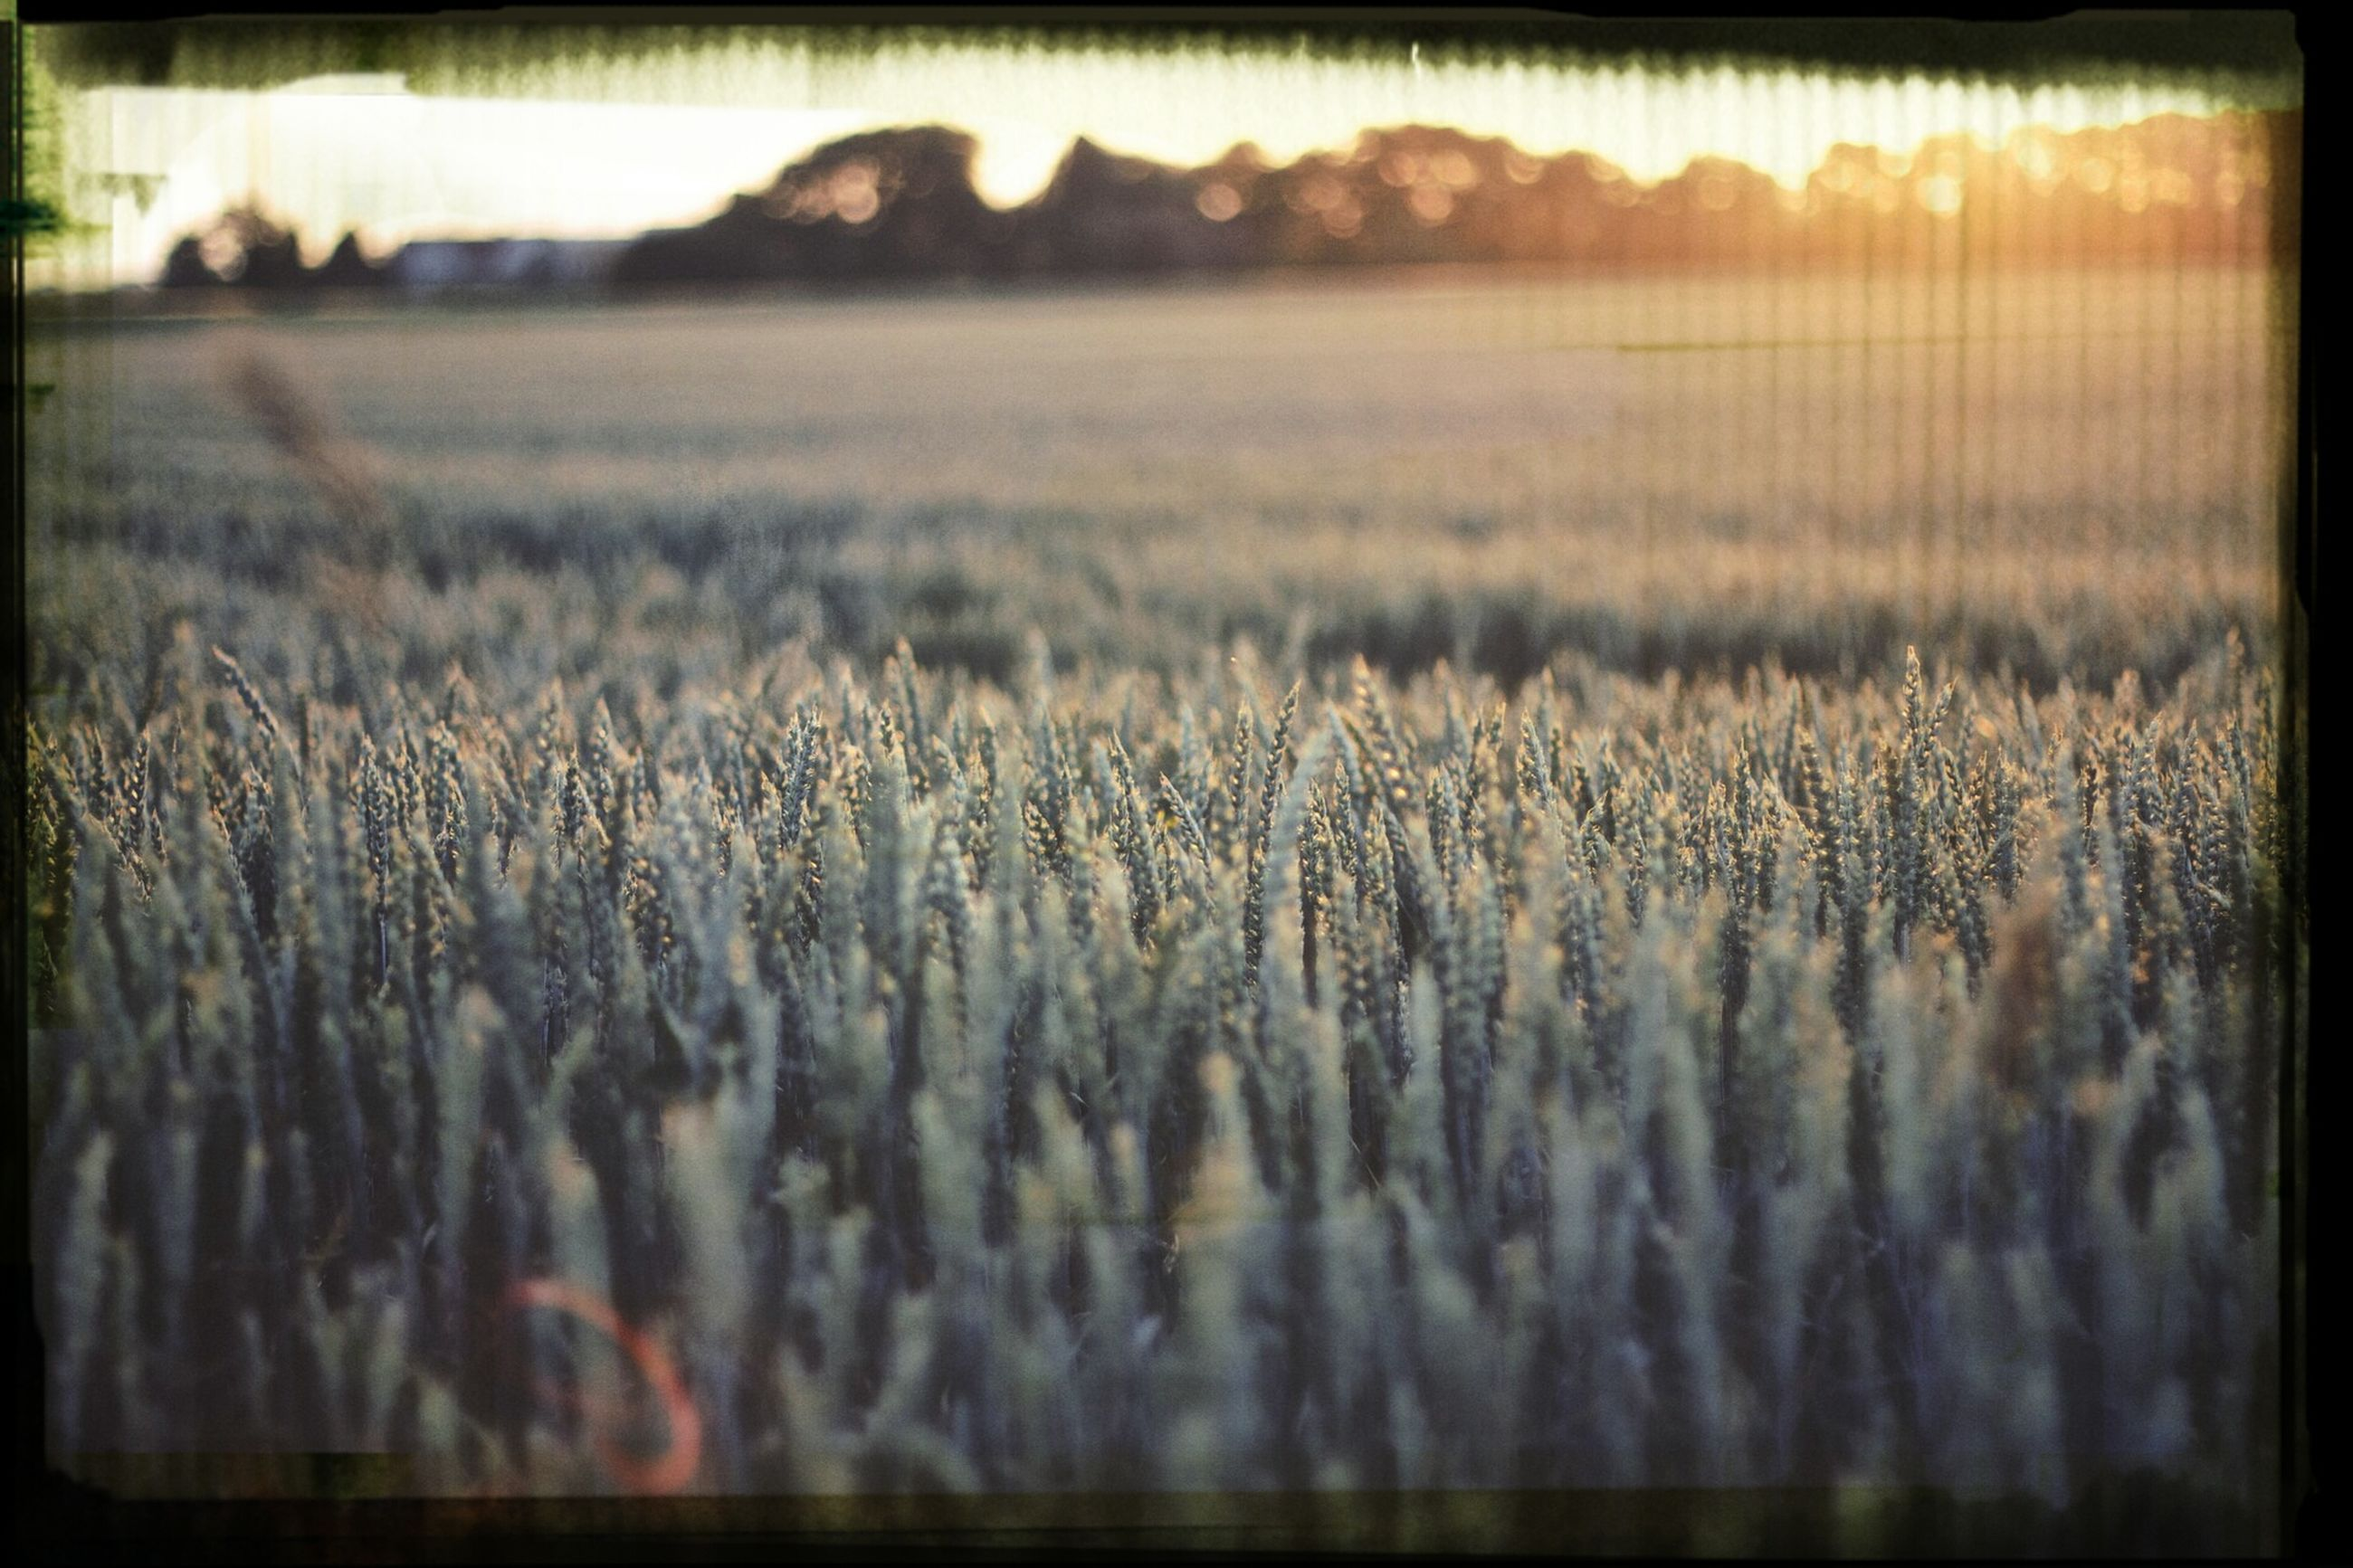 transfer print, field, auto post production filter, landscape, selective focus, rural scene, agriculture, grass, tranquil scene, tranquility, farm, nature, day, surface level, outdoors, sky, growth, scenics, no people, focus on foreground